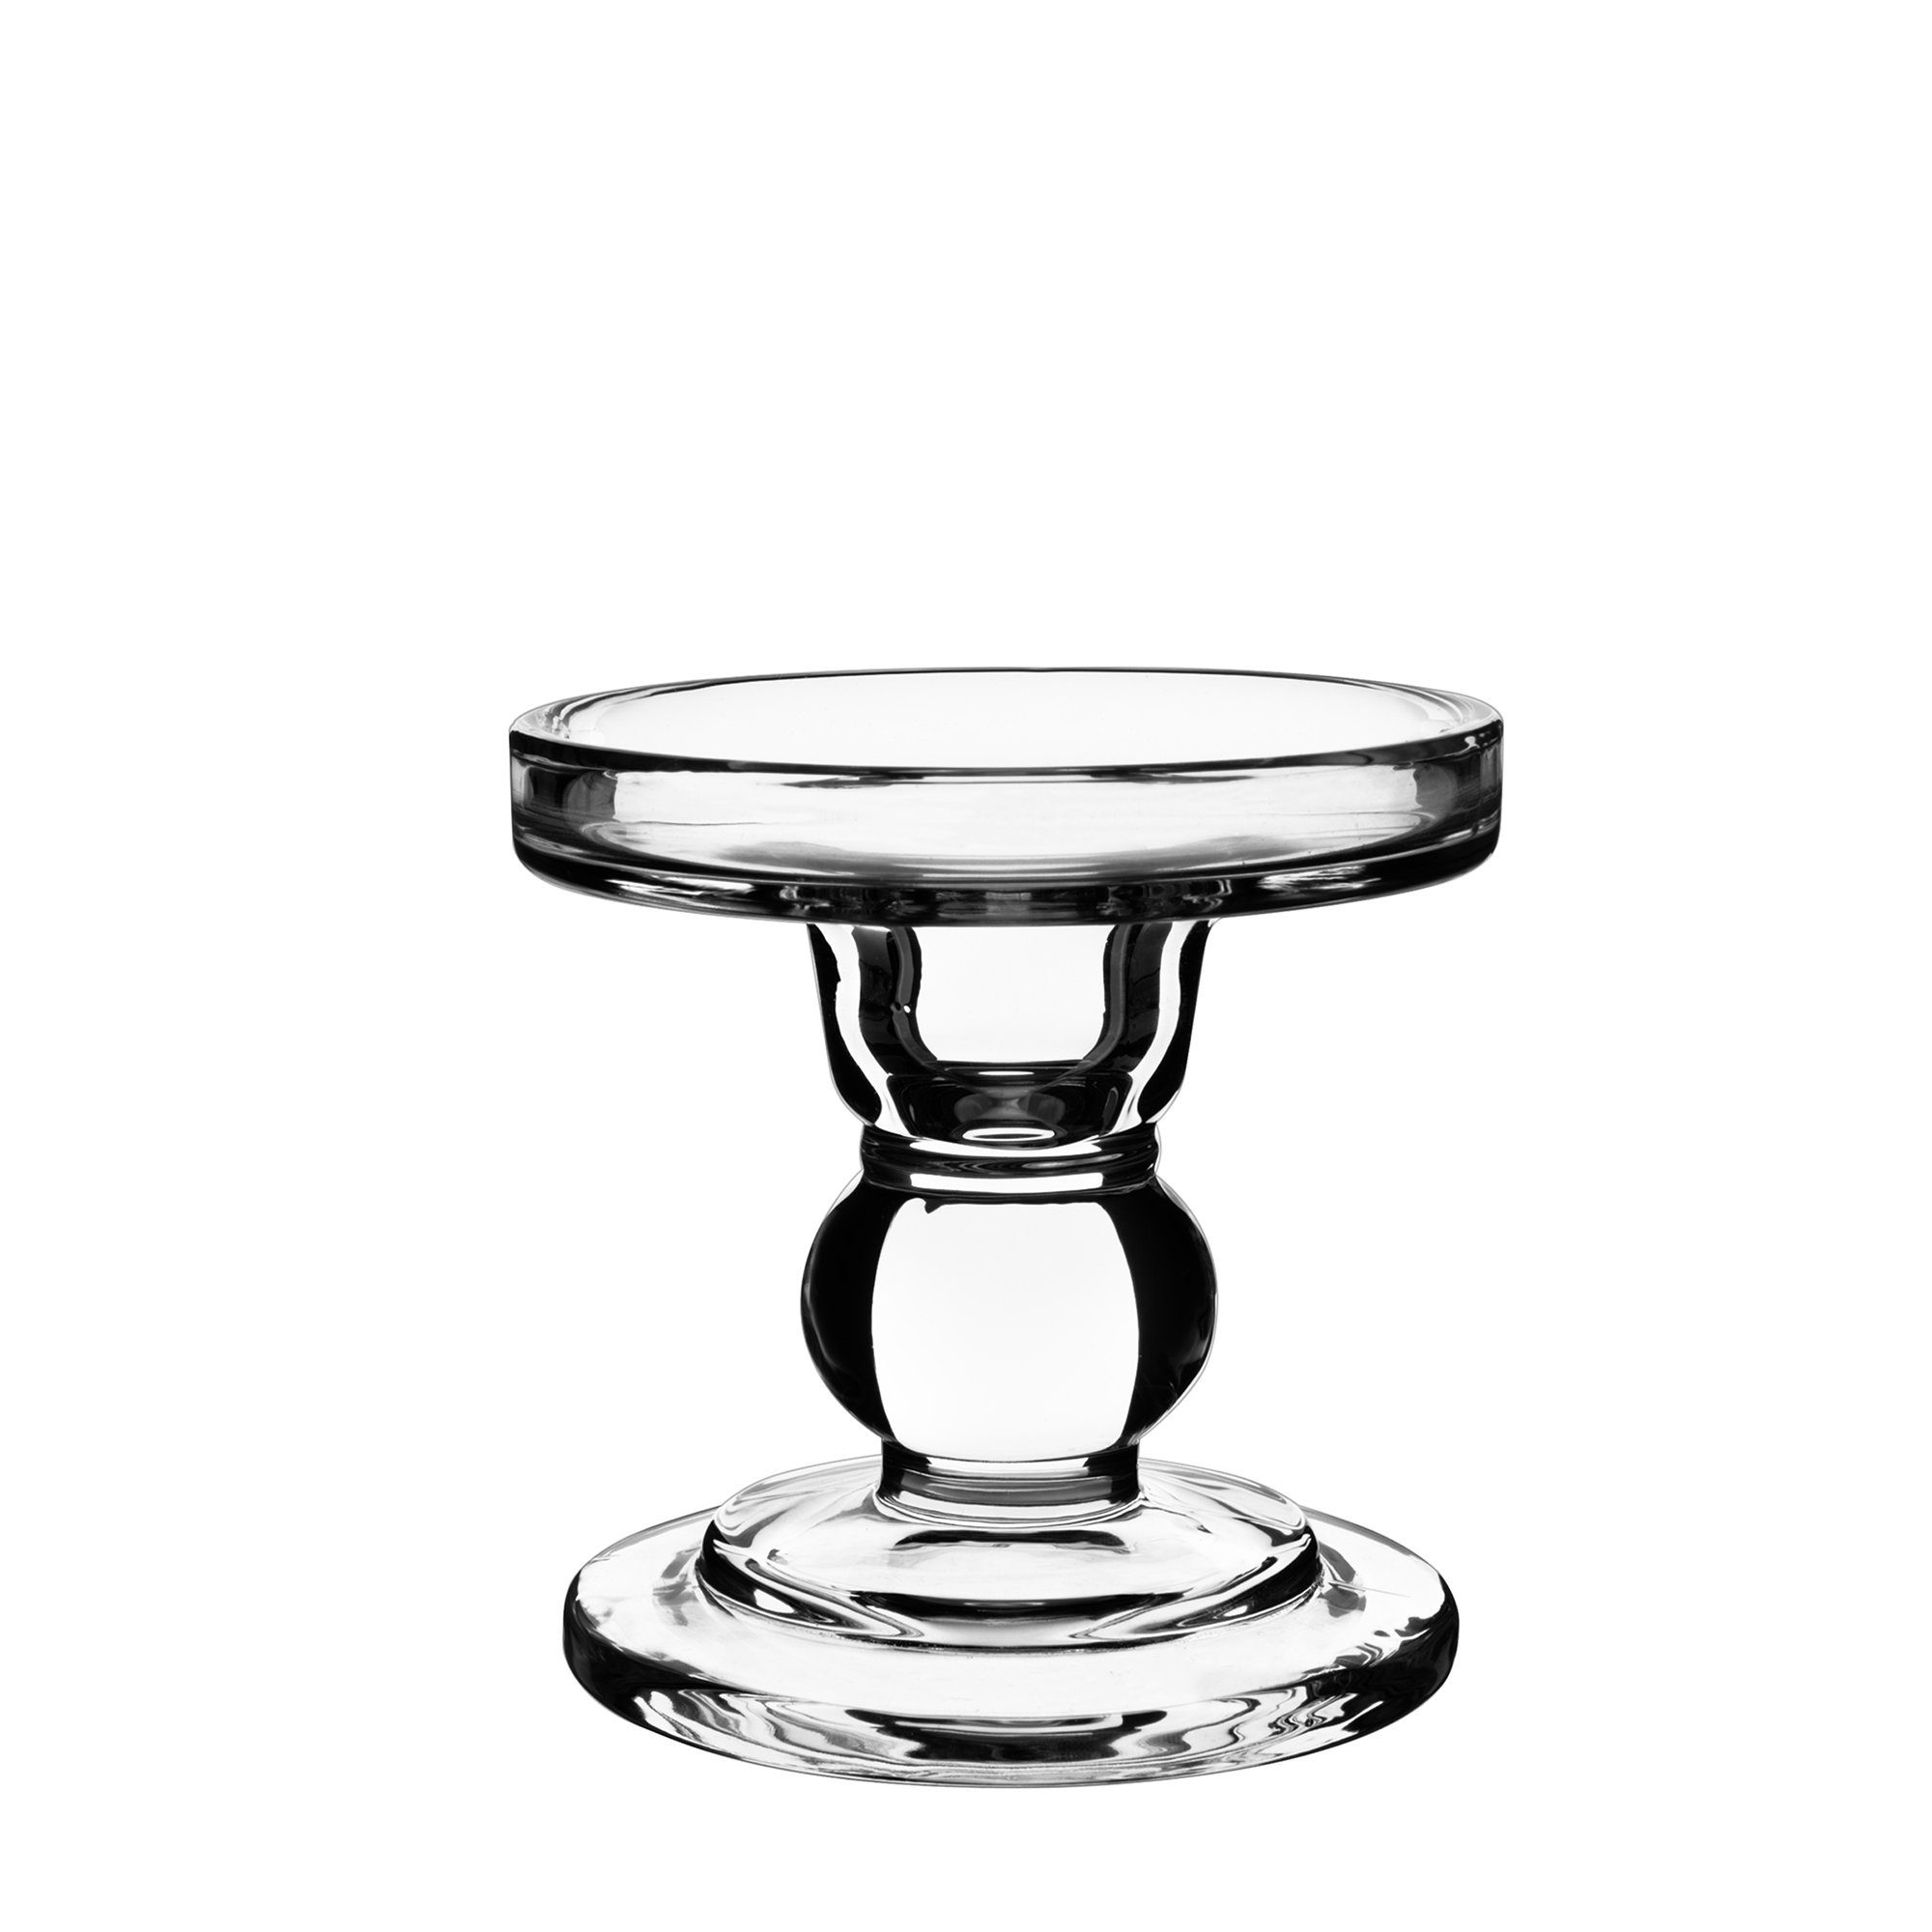 CYS EXCEL Clear Glass Pillar Candle Holder - Taper Candle Stand - Dual Use for Pillar or Taper Candlesticks-3.5'' H- Pack of 2 PCS